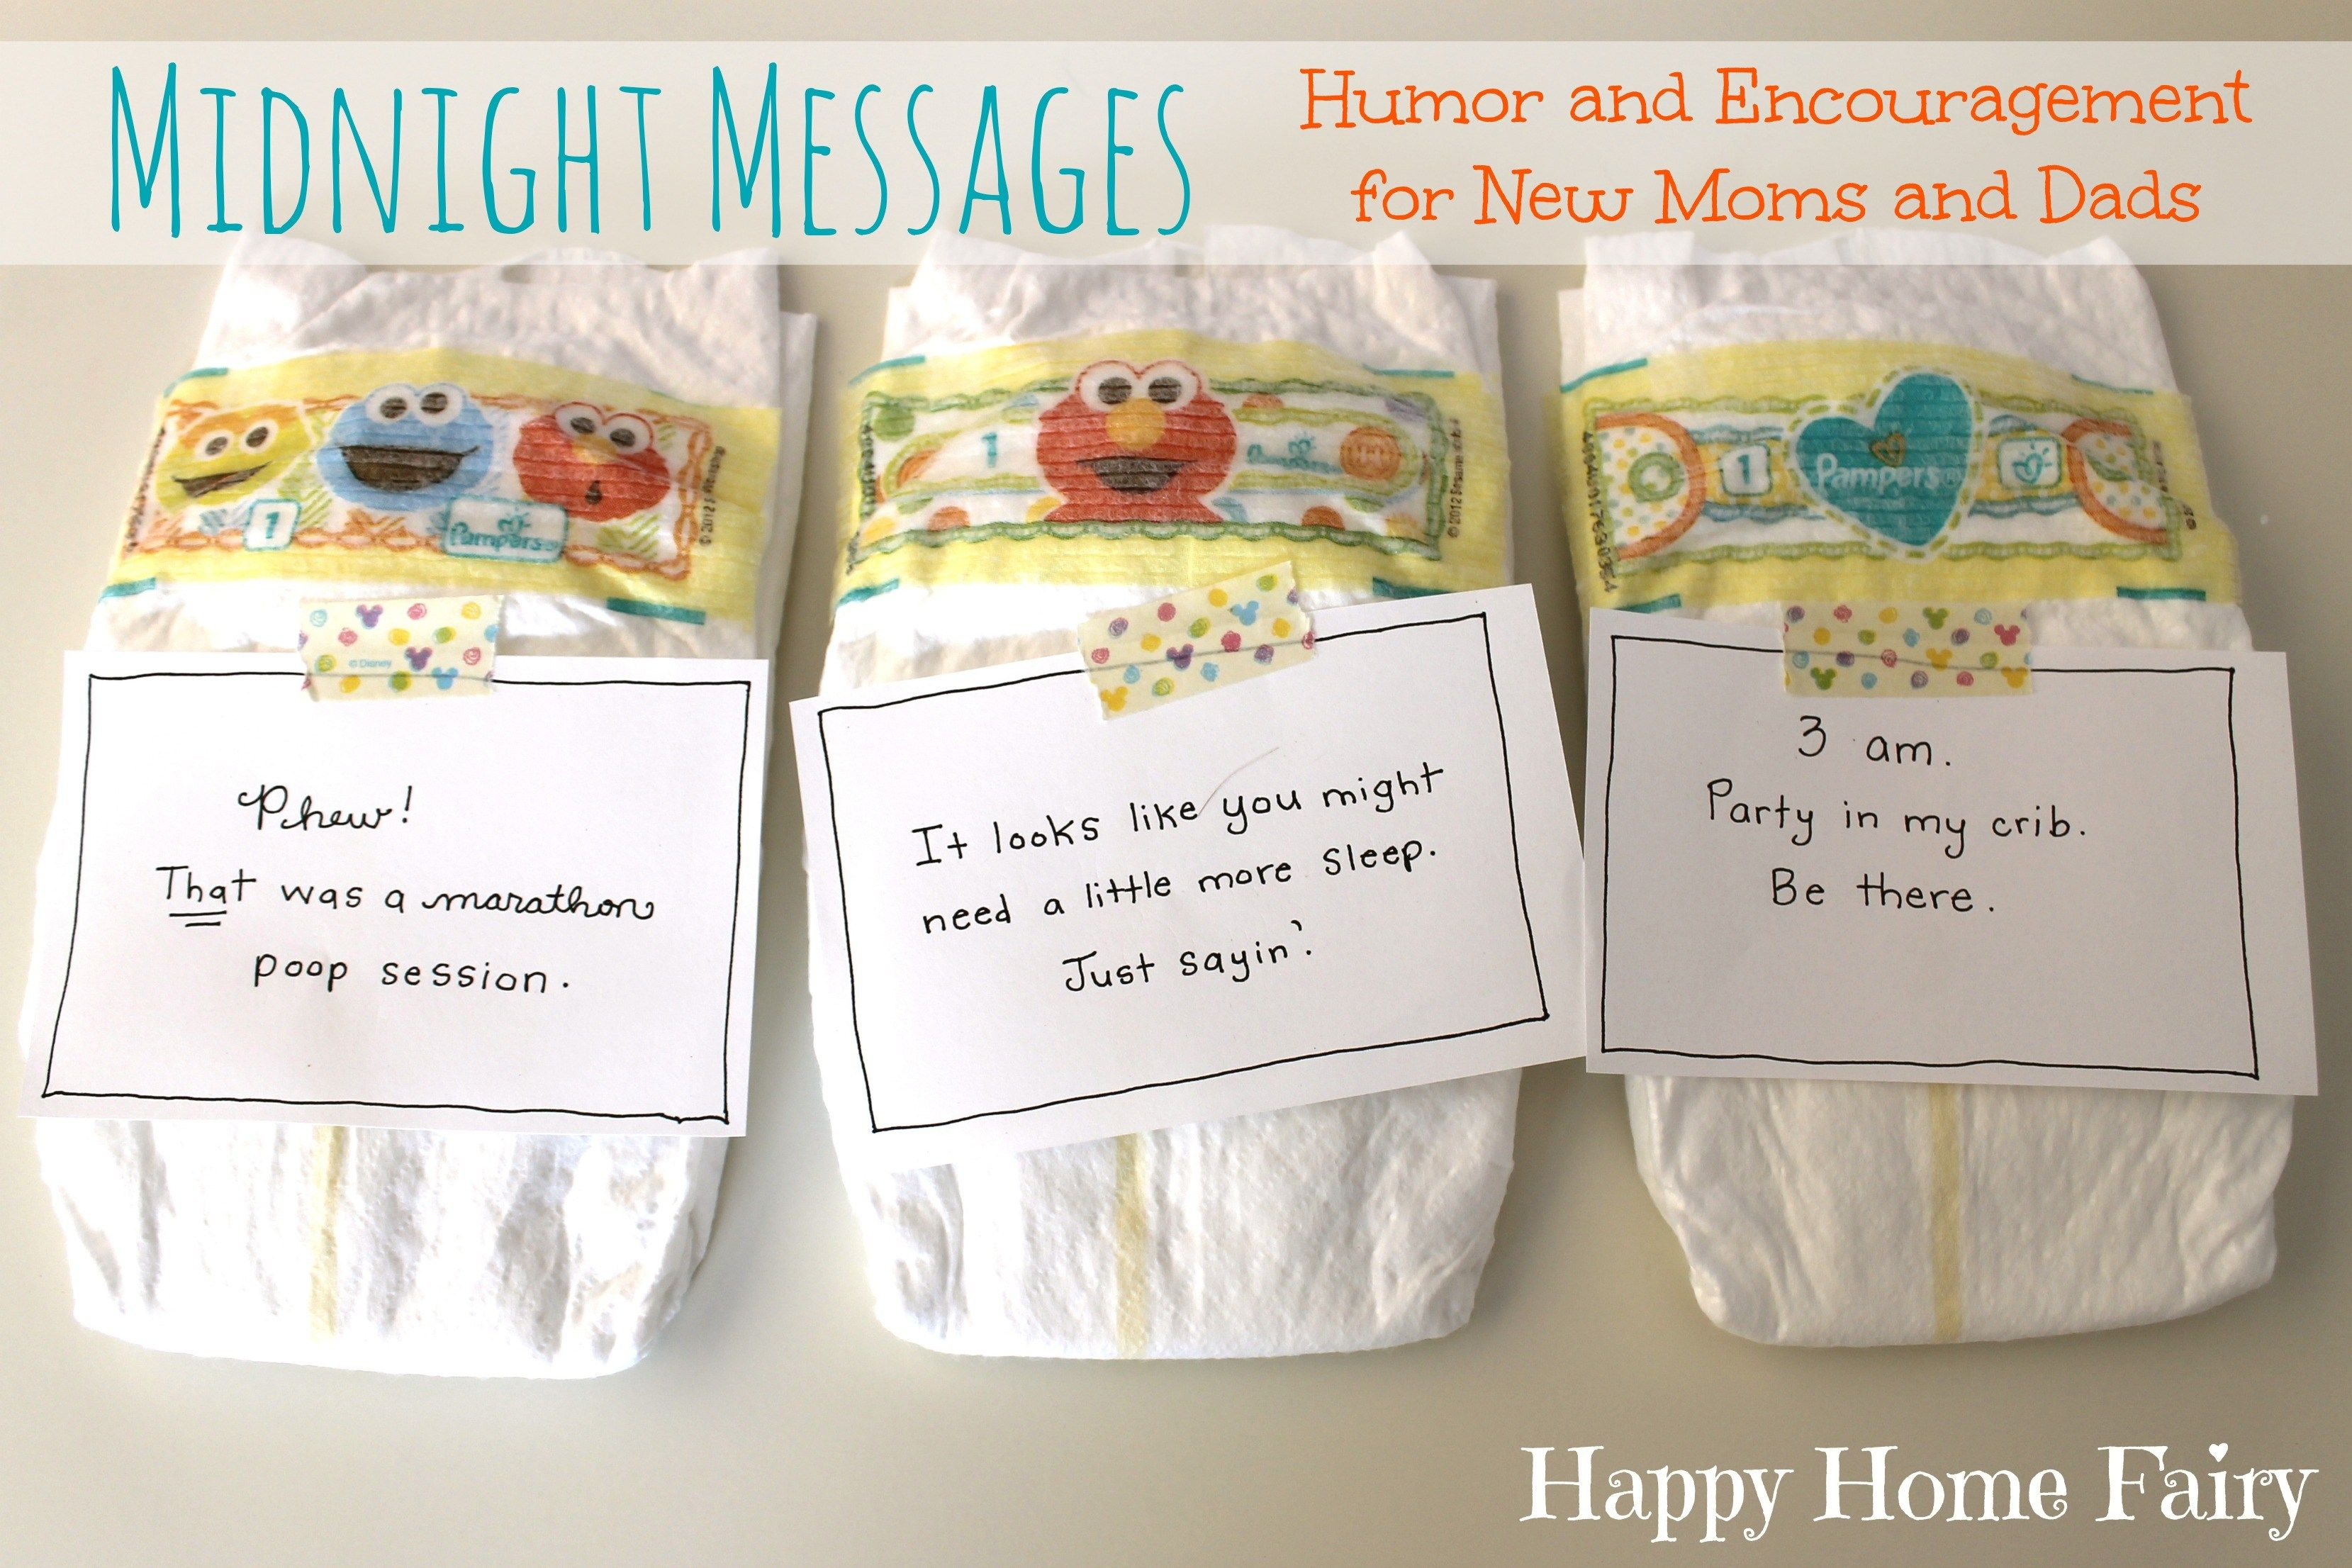 Midnight Messages For New Mommies Free Printable Happy Home Fairy Baby Shower Funny Funny Baby Shower Games Funny Baby Shower Gifts